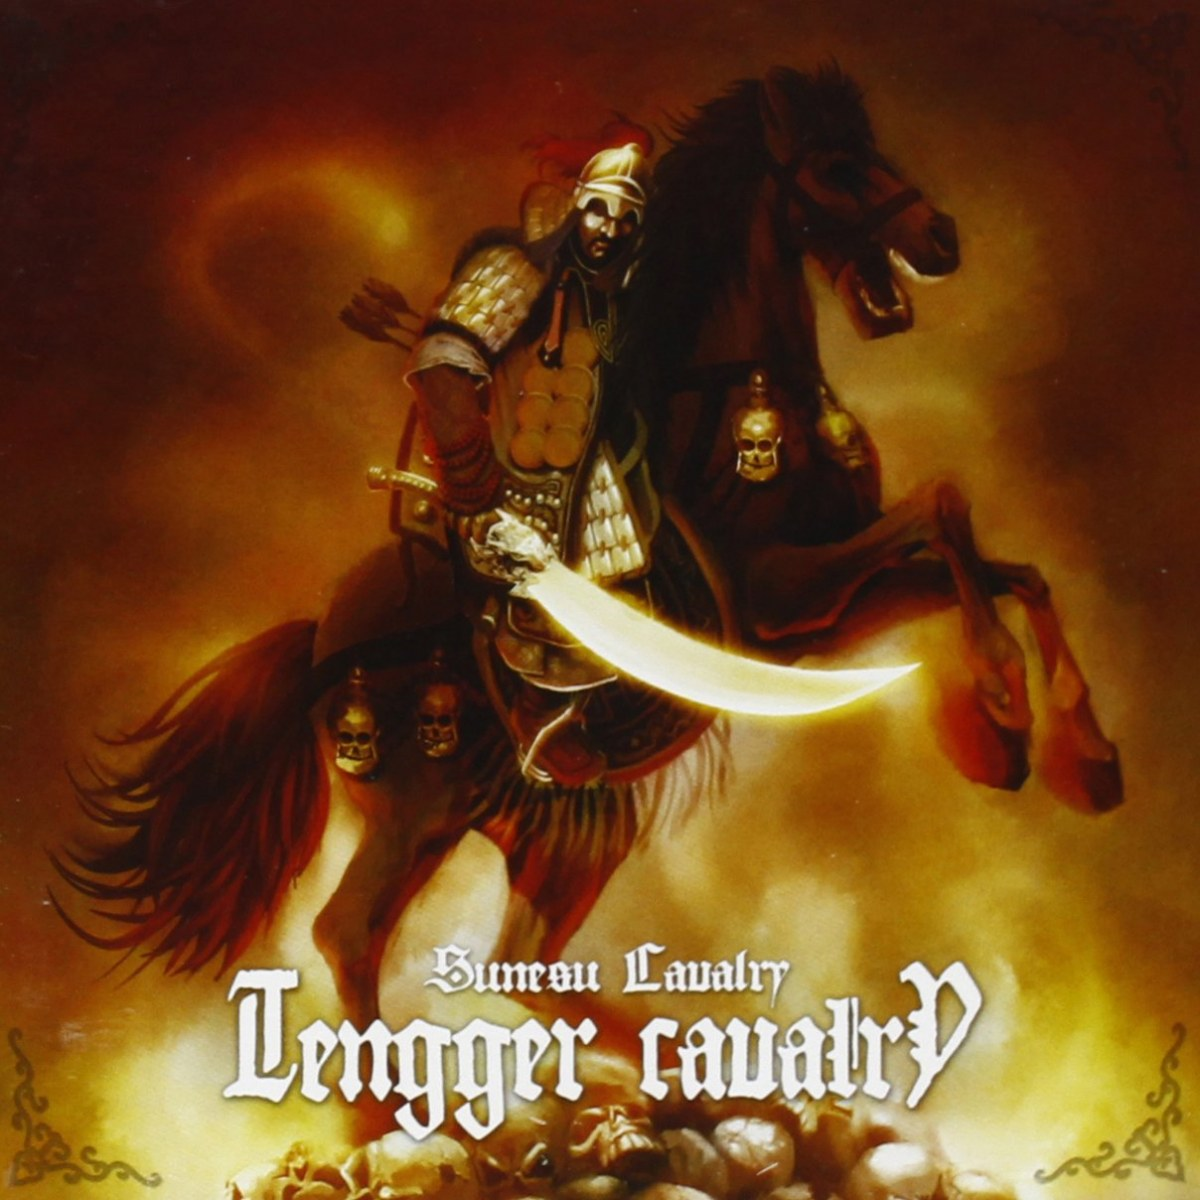 Review for Tengger Cavalry - Cavalry Folk